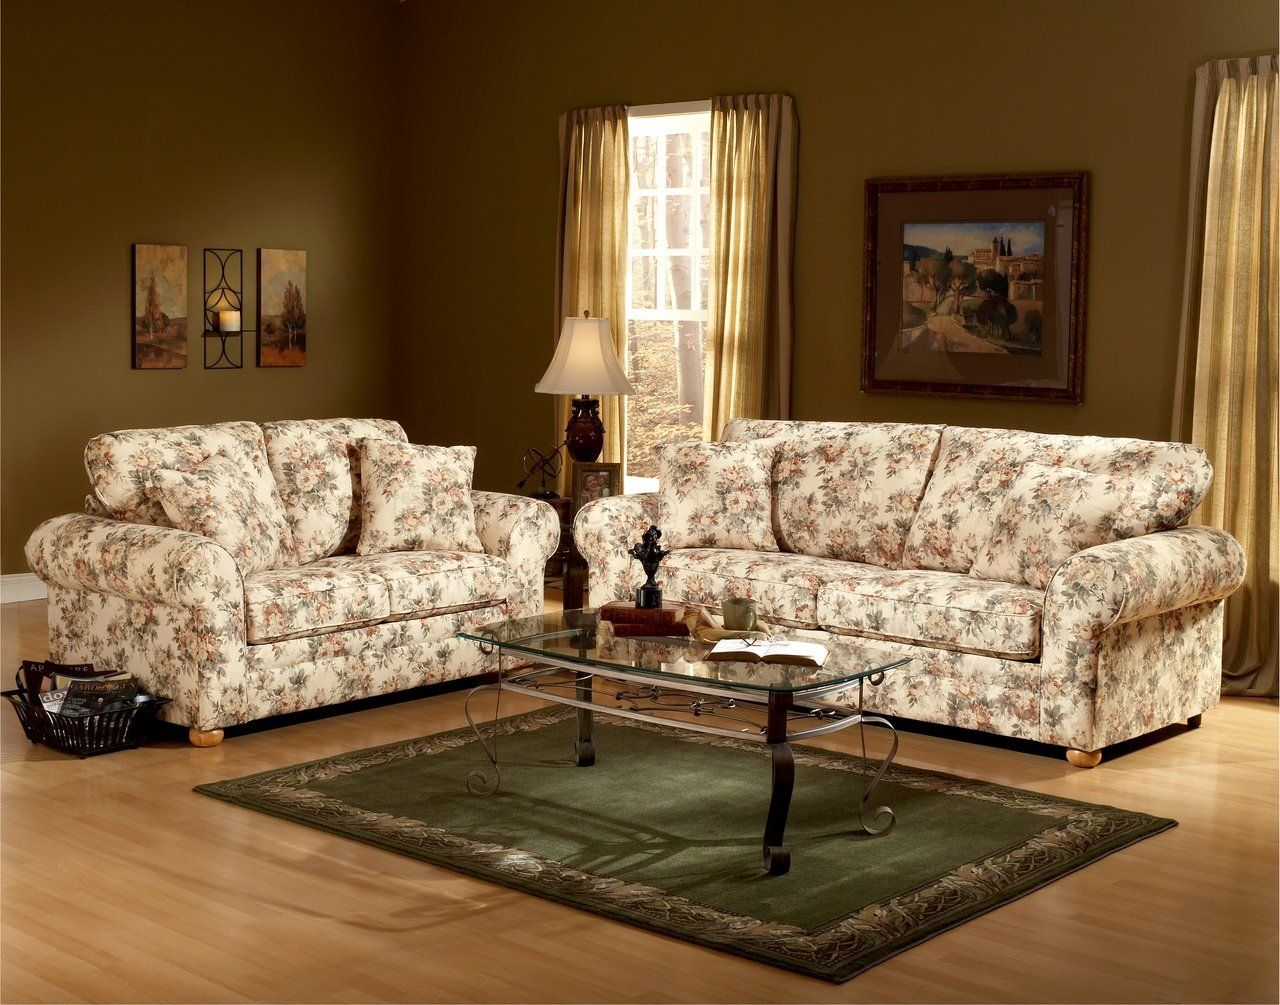 Floral Pattern Fabric Traditional Sofa Loveseat Set In A More Traditional Room Couch And Loveseat Set Sofa And Loveseat Set Couch And Loveseat